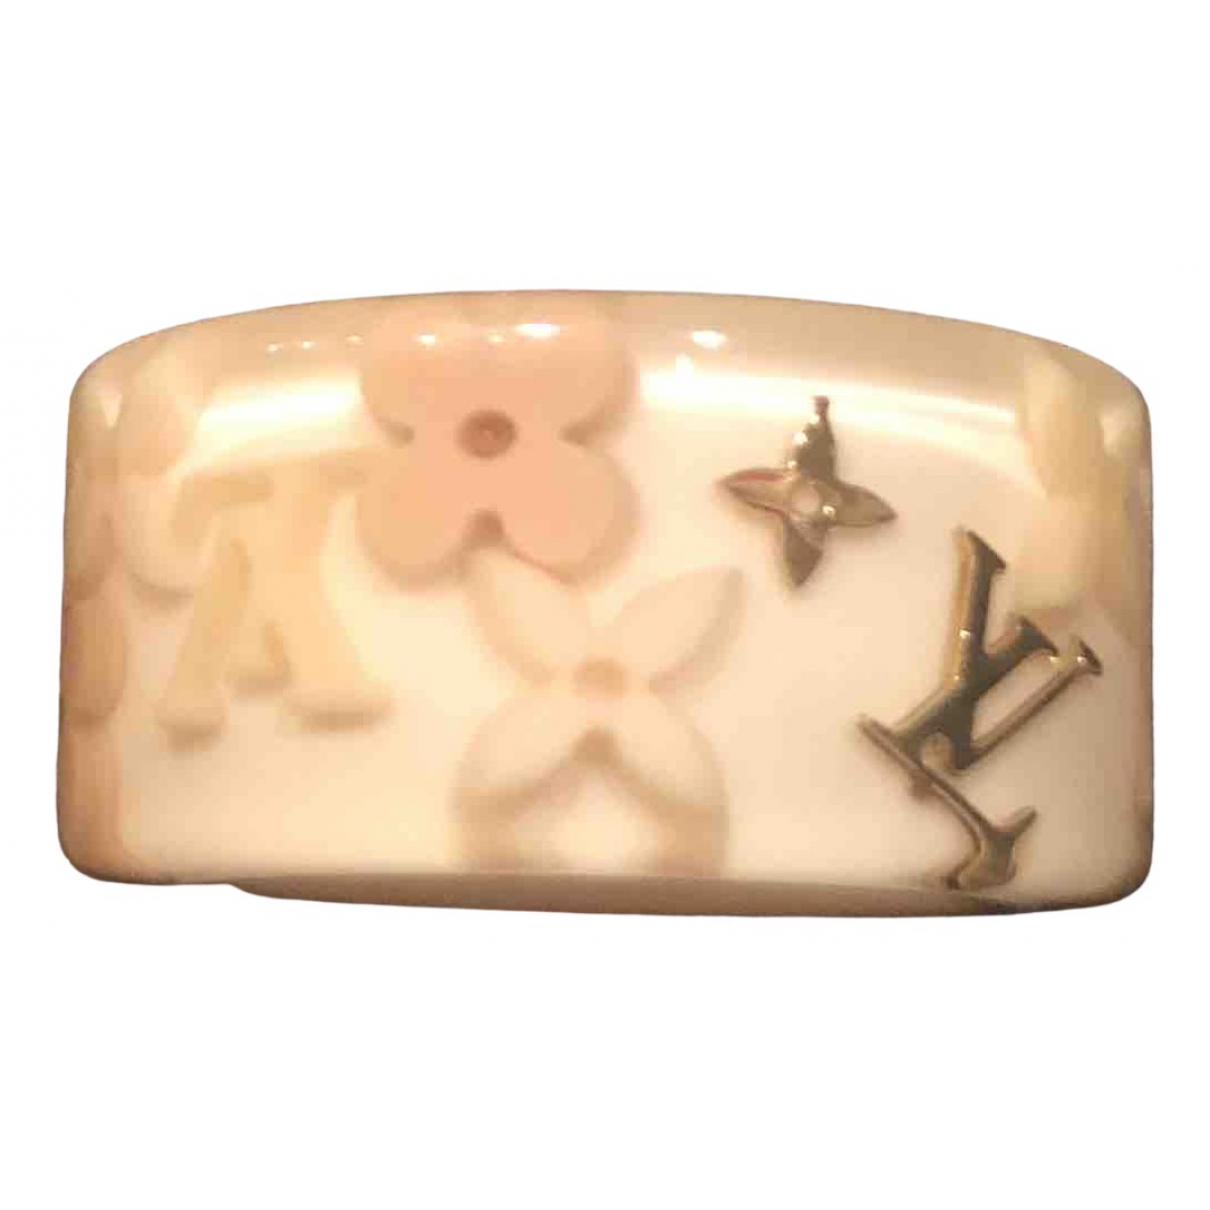 Louis Vuitton Inclusion ring for Women 44 EU